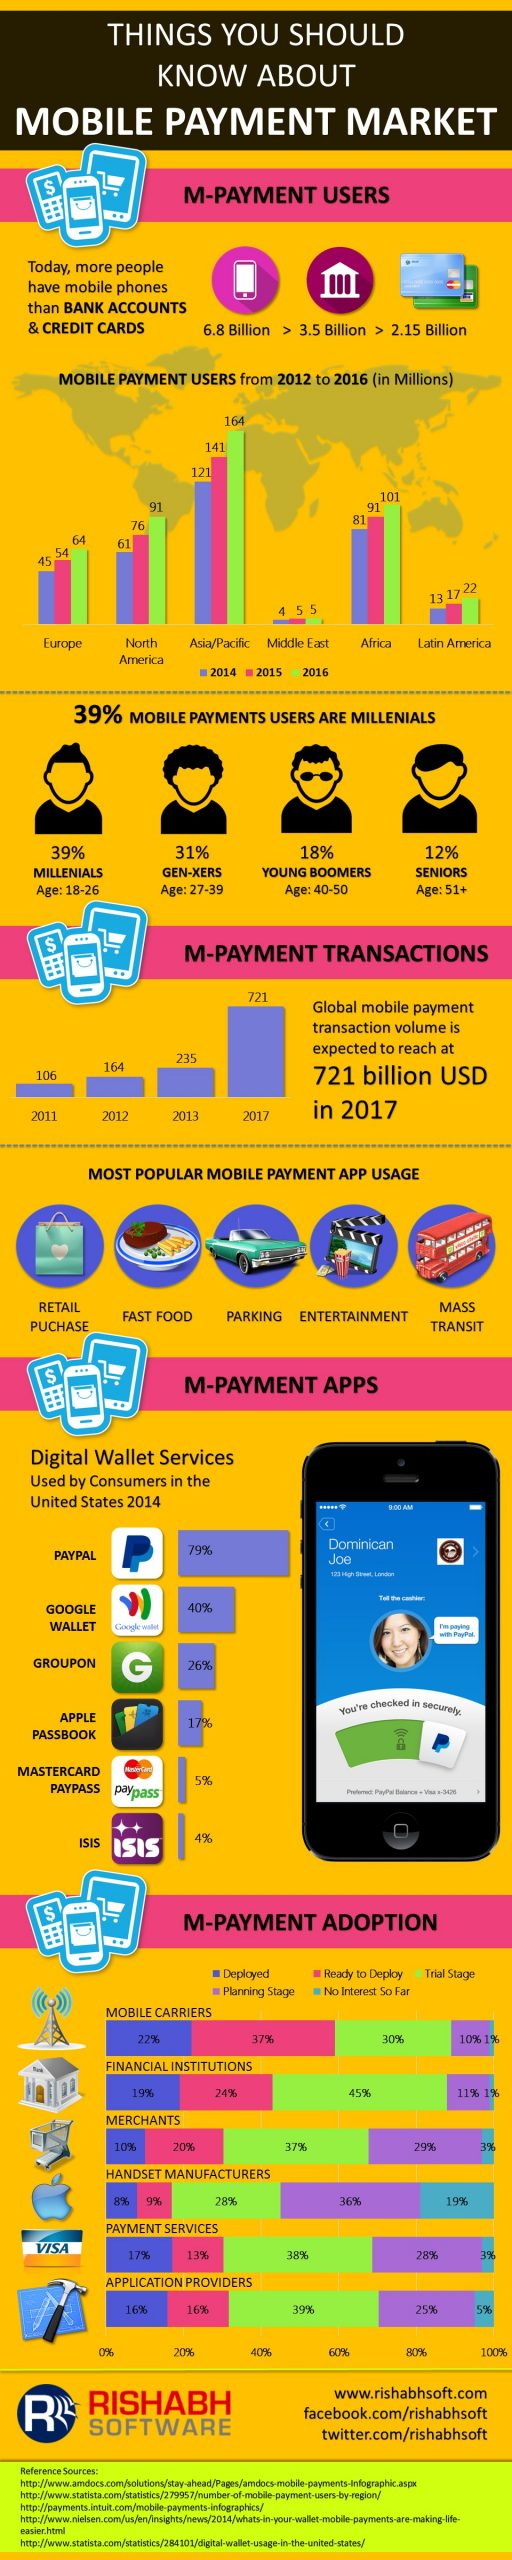 Mobile-Payment-Market-Infographic